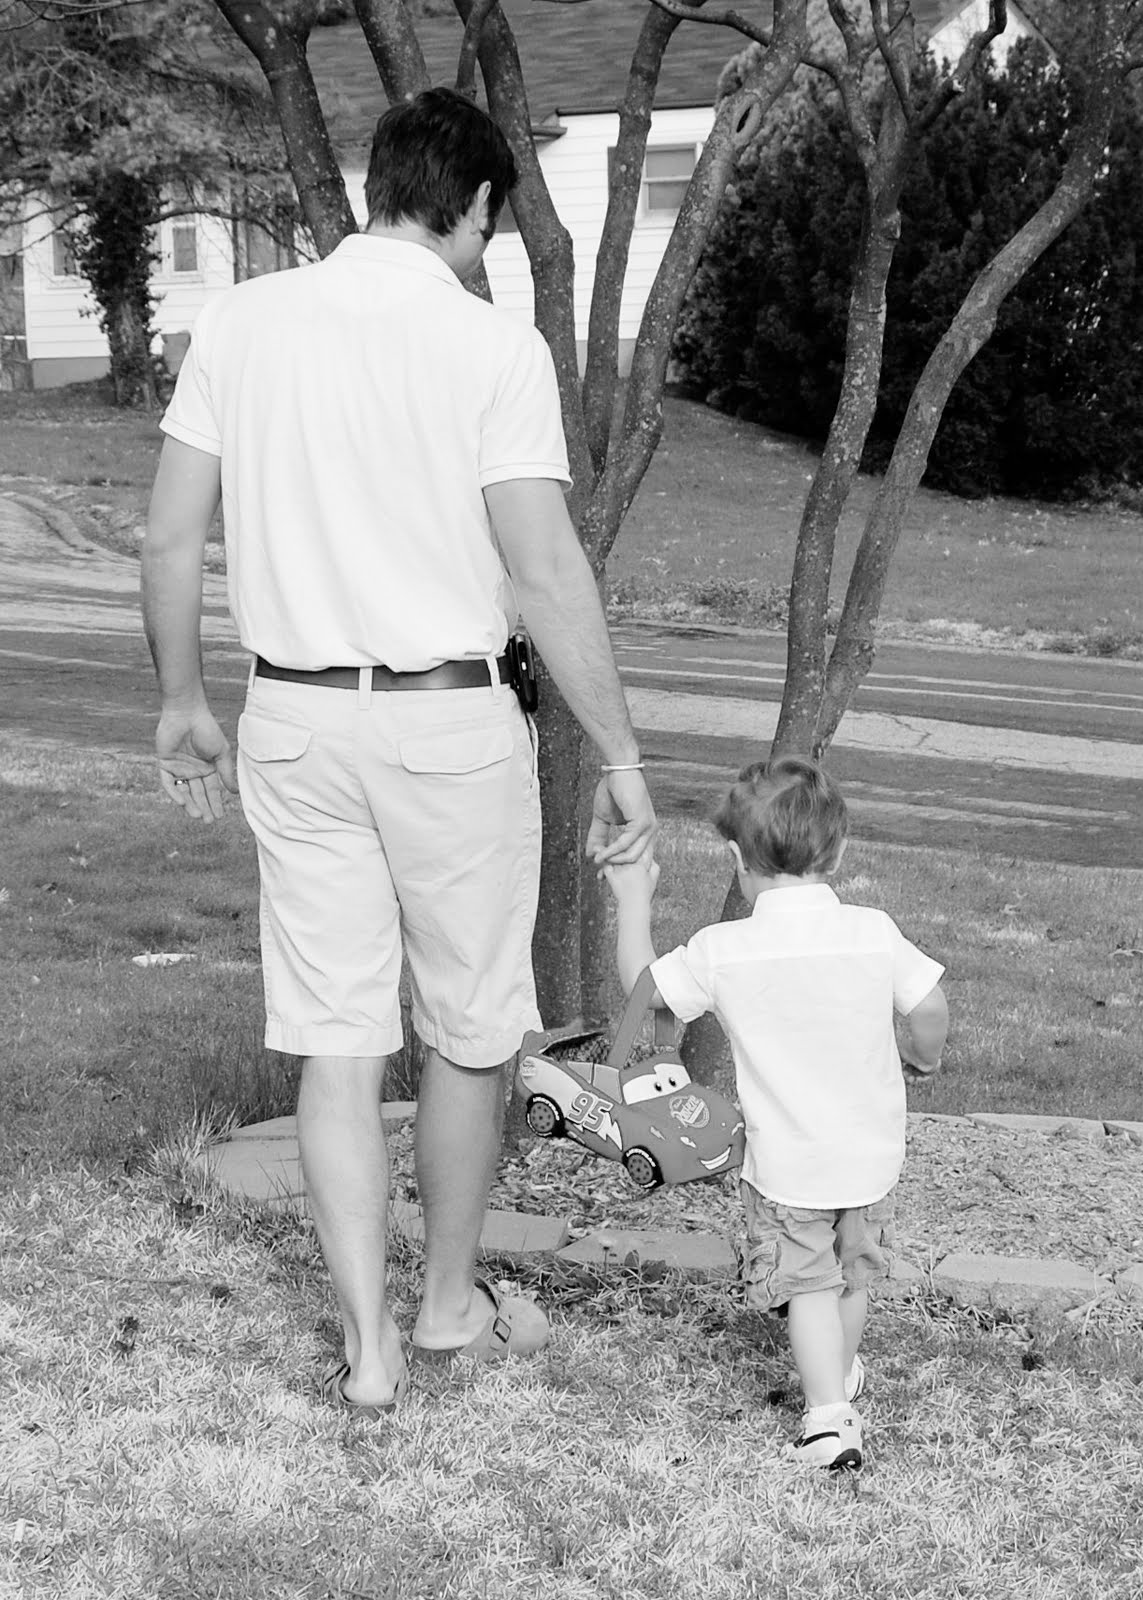 father and son critical essay Secular scripture and cormac mccarthy's the road(critical essay) but the road is unique in locating the basis for meaning in the father's love for his son.